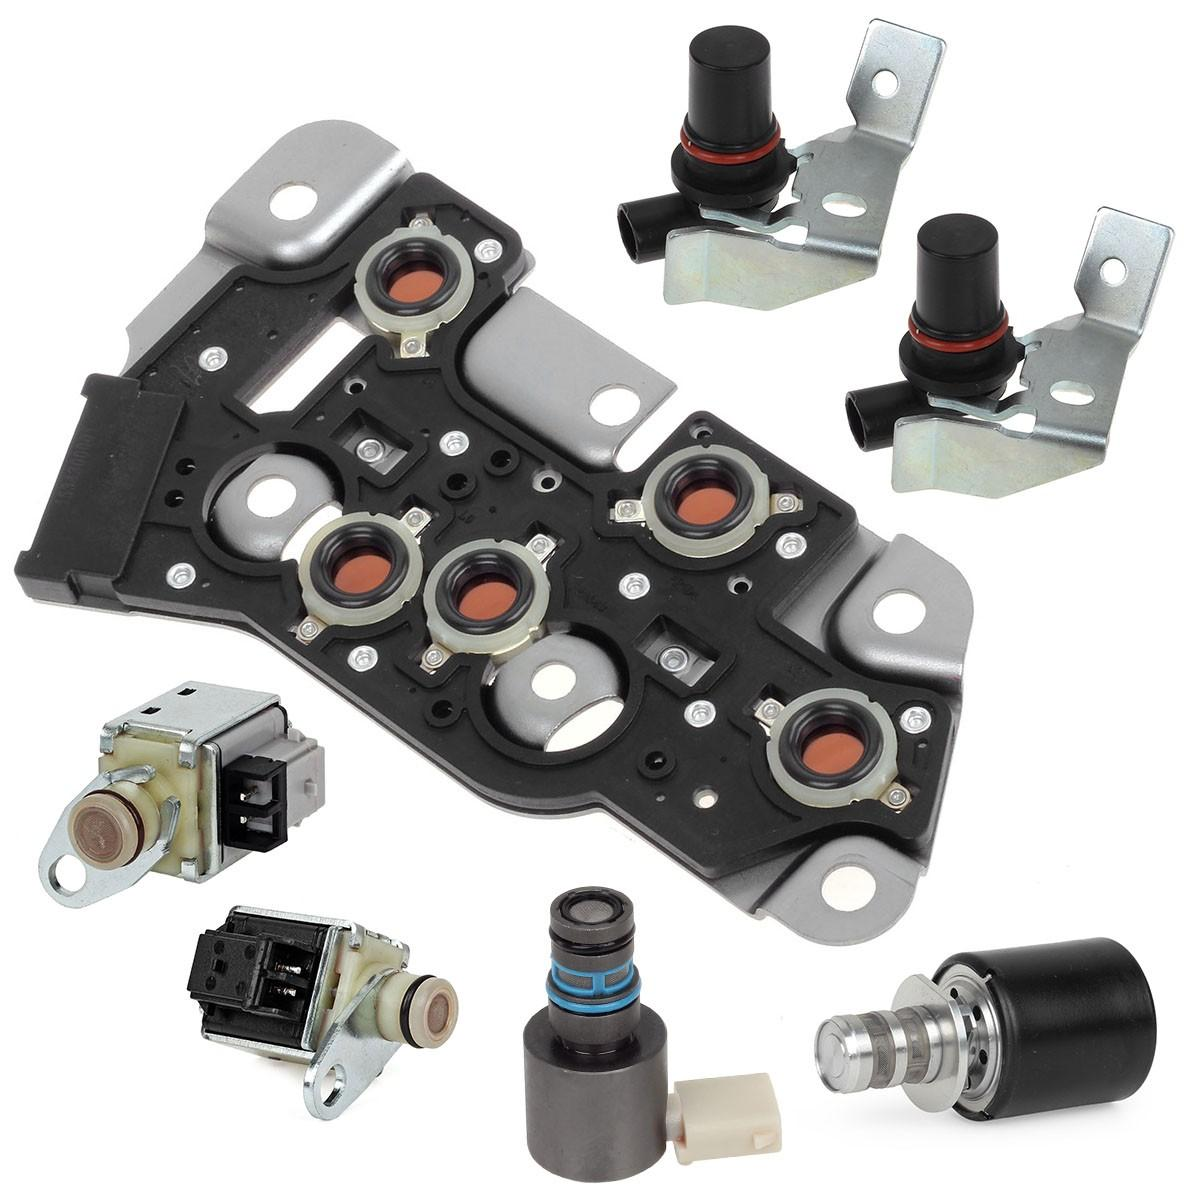 Tcc Solenoid Replacement Related Keywords & Suggestions